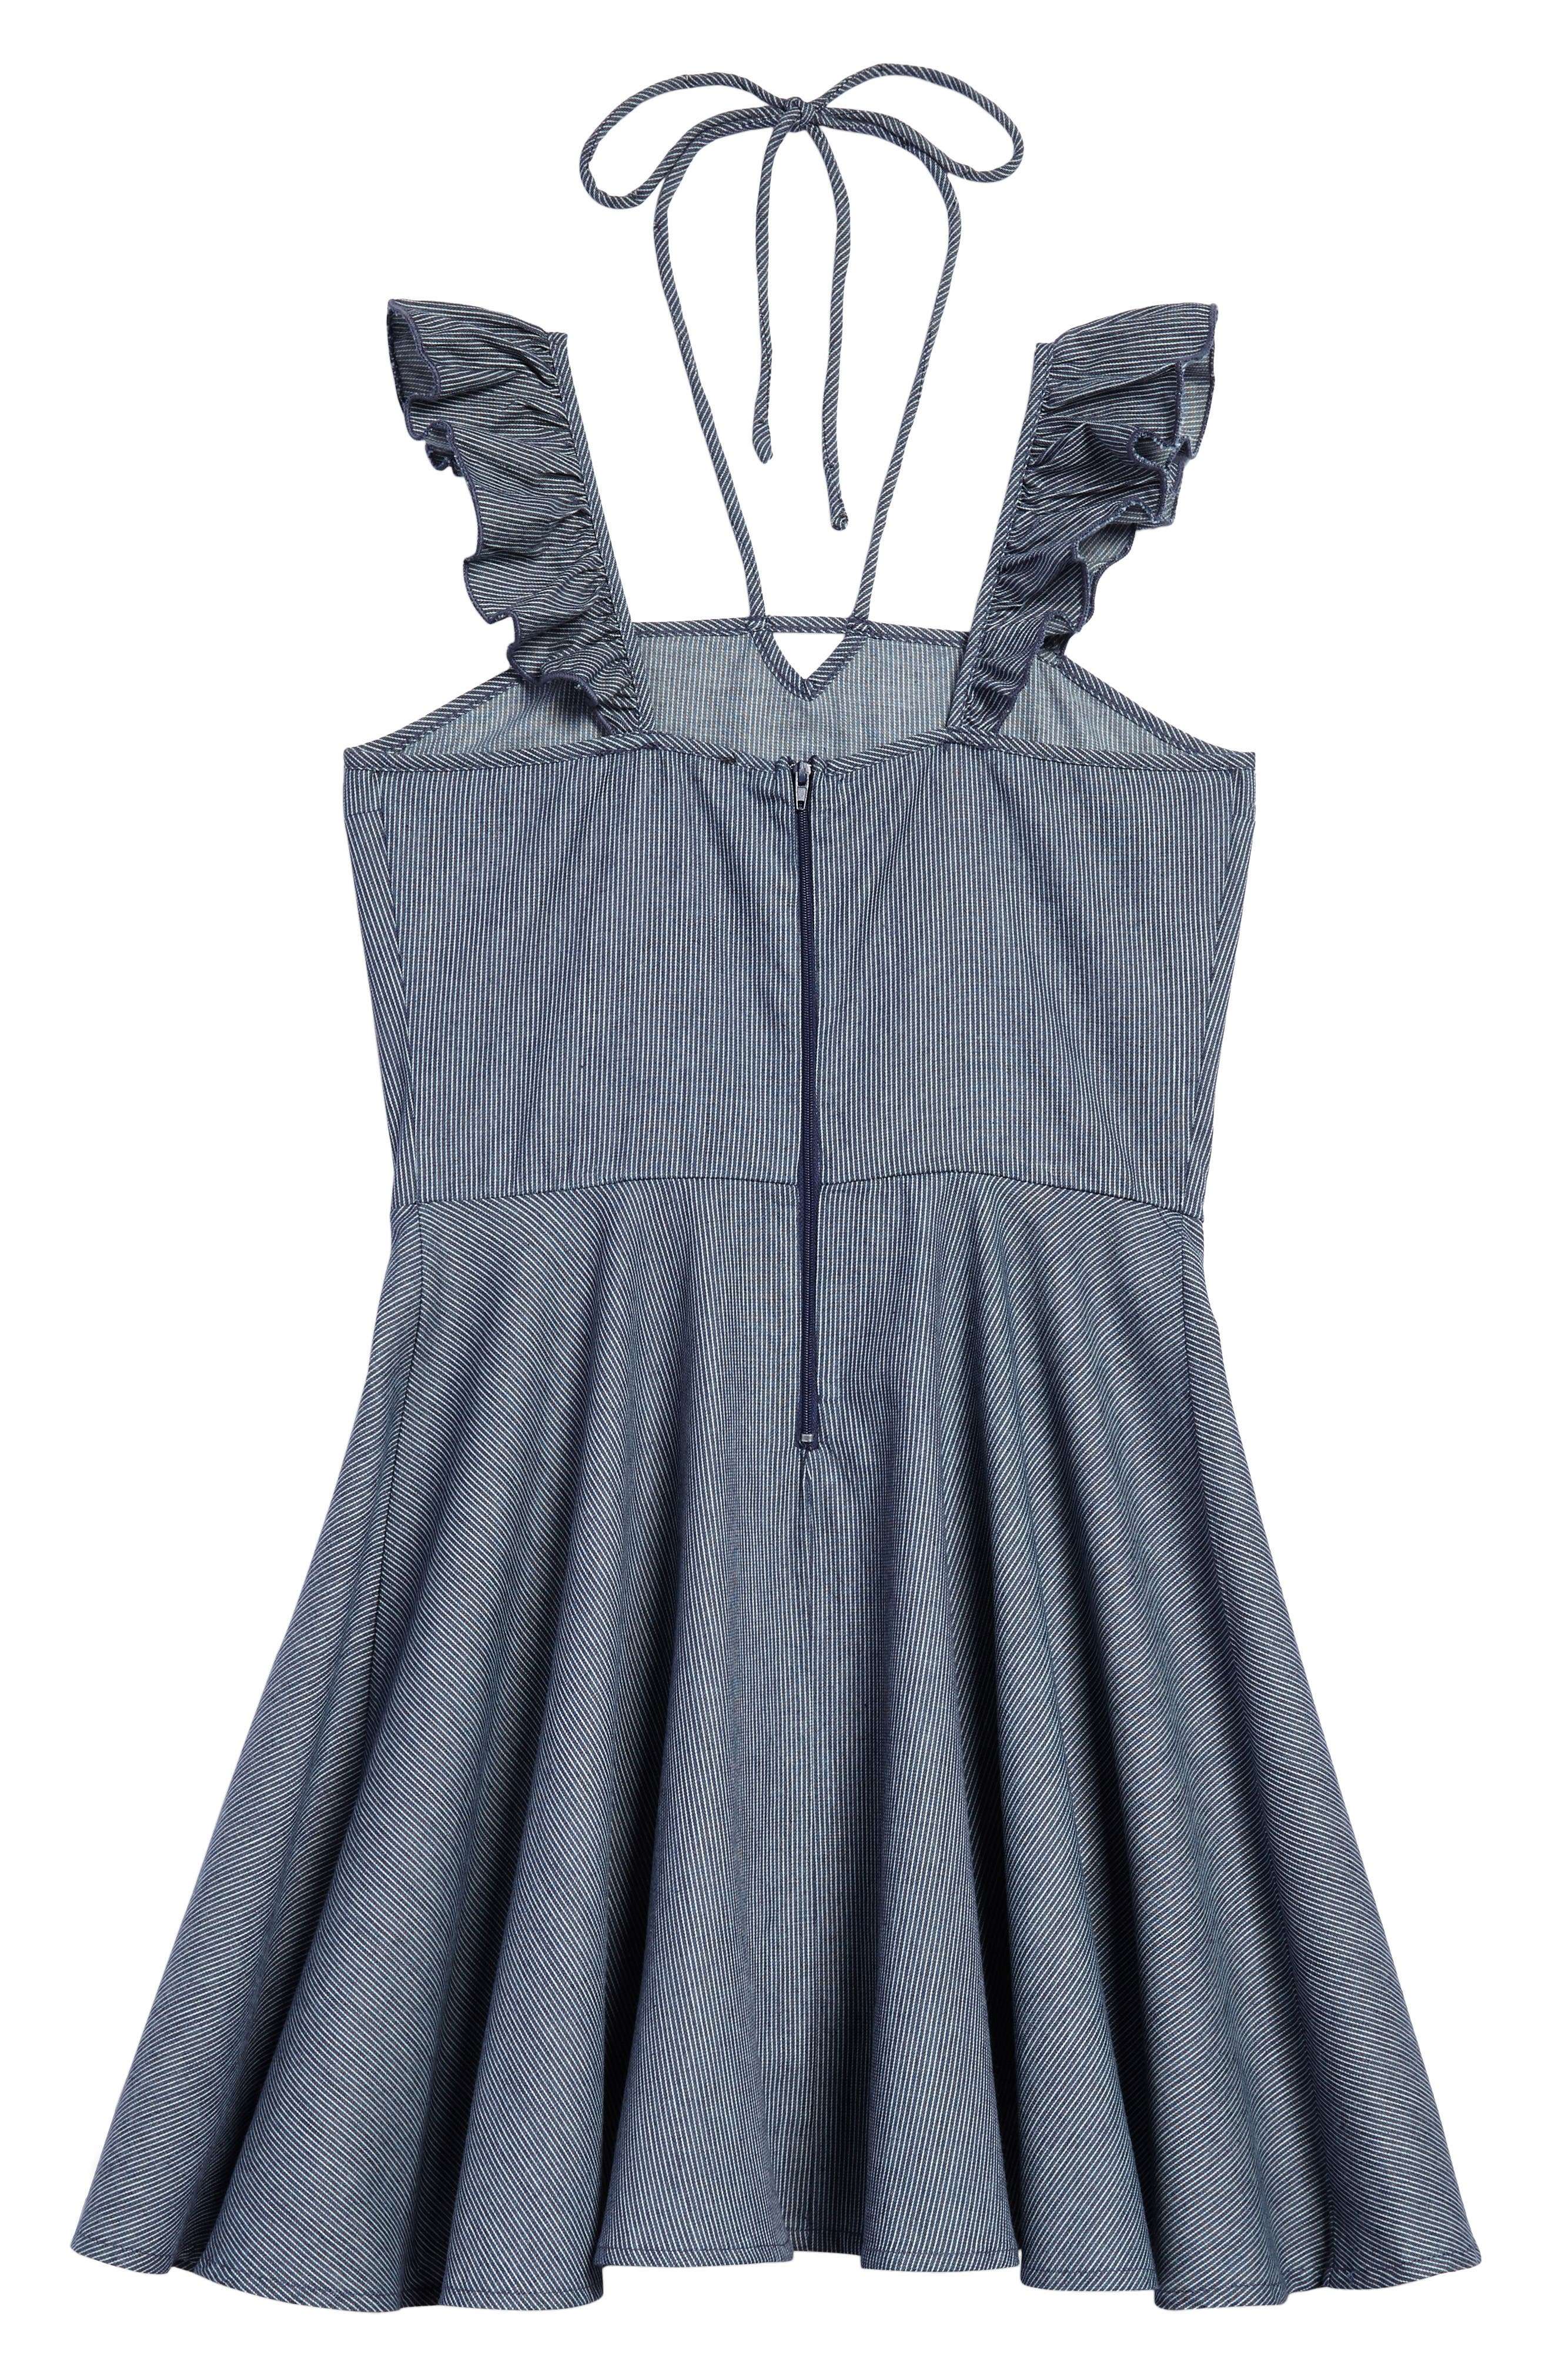 Ruffle Shoulder Dress,                             Alternate thumbnail 2, color,                             Navy